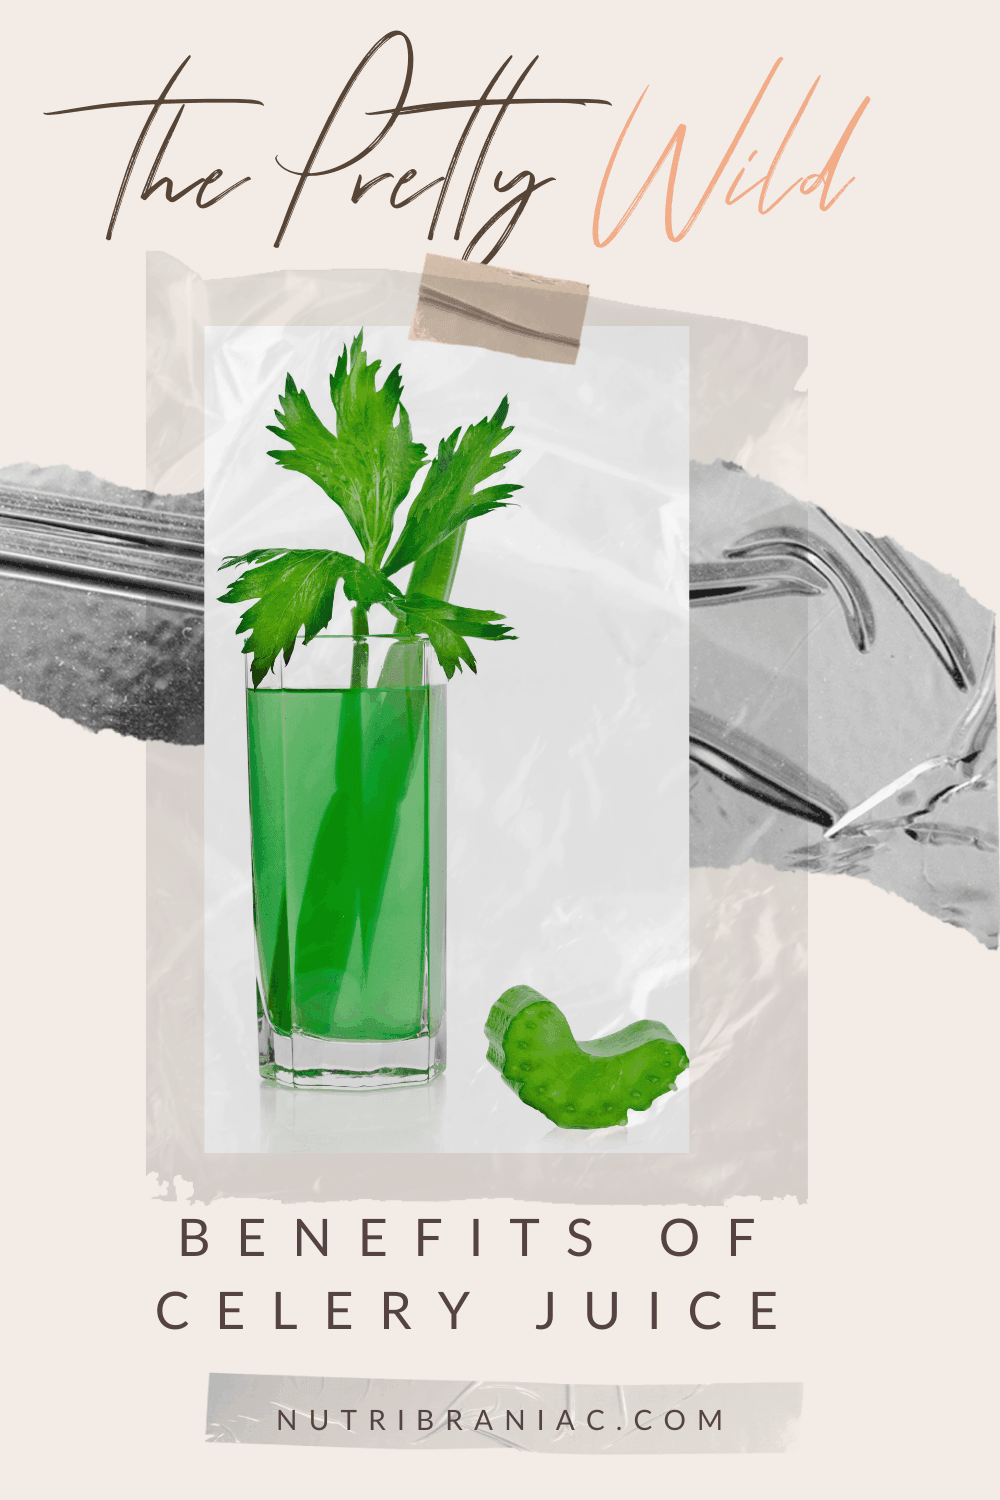 """graphic image of celery juice with text overlay """"The Pretty Wild Benefits of Celery Juice"""""""